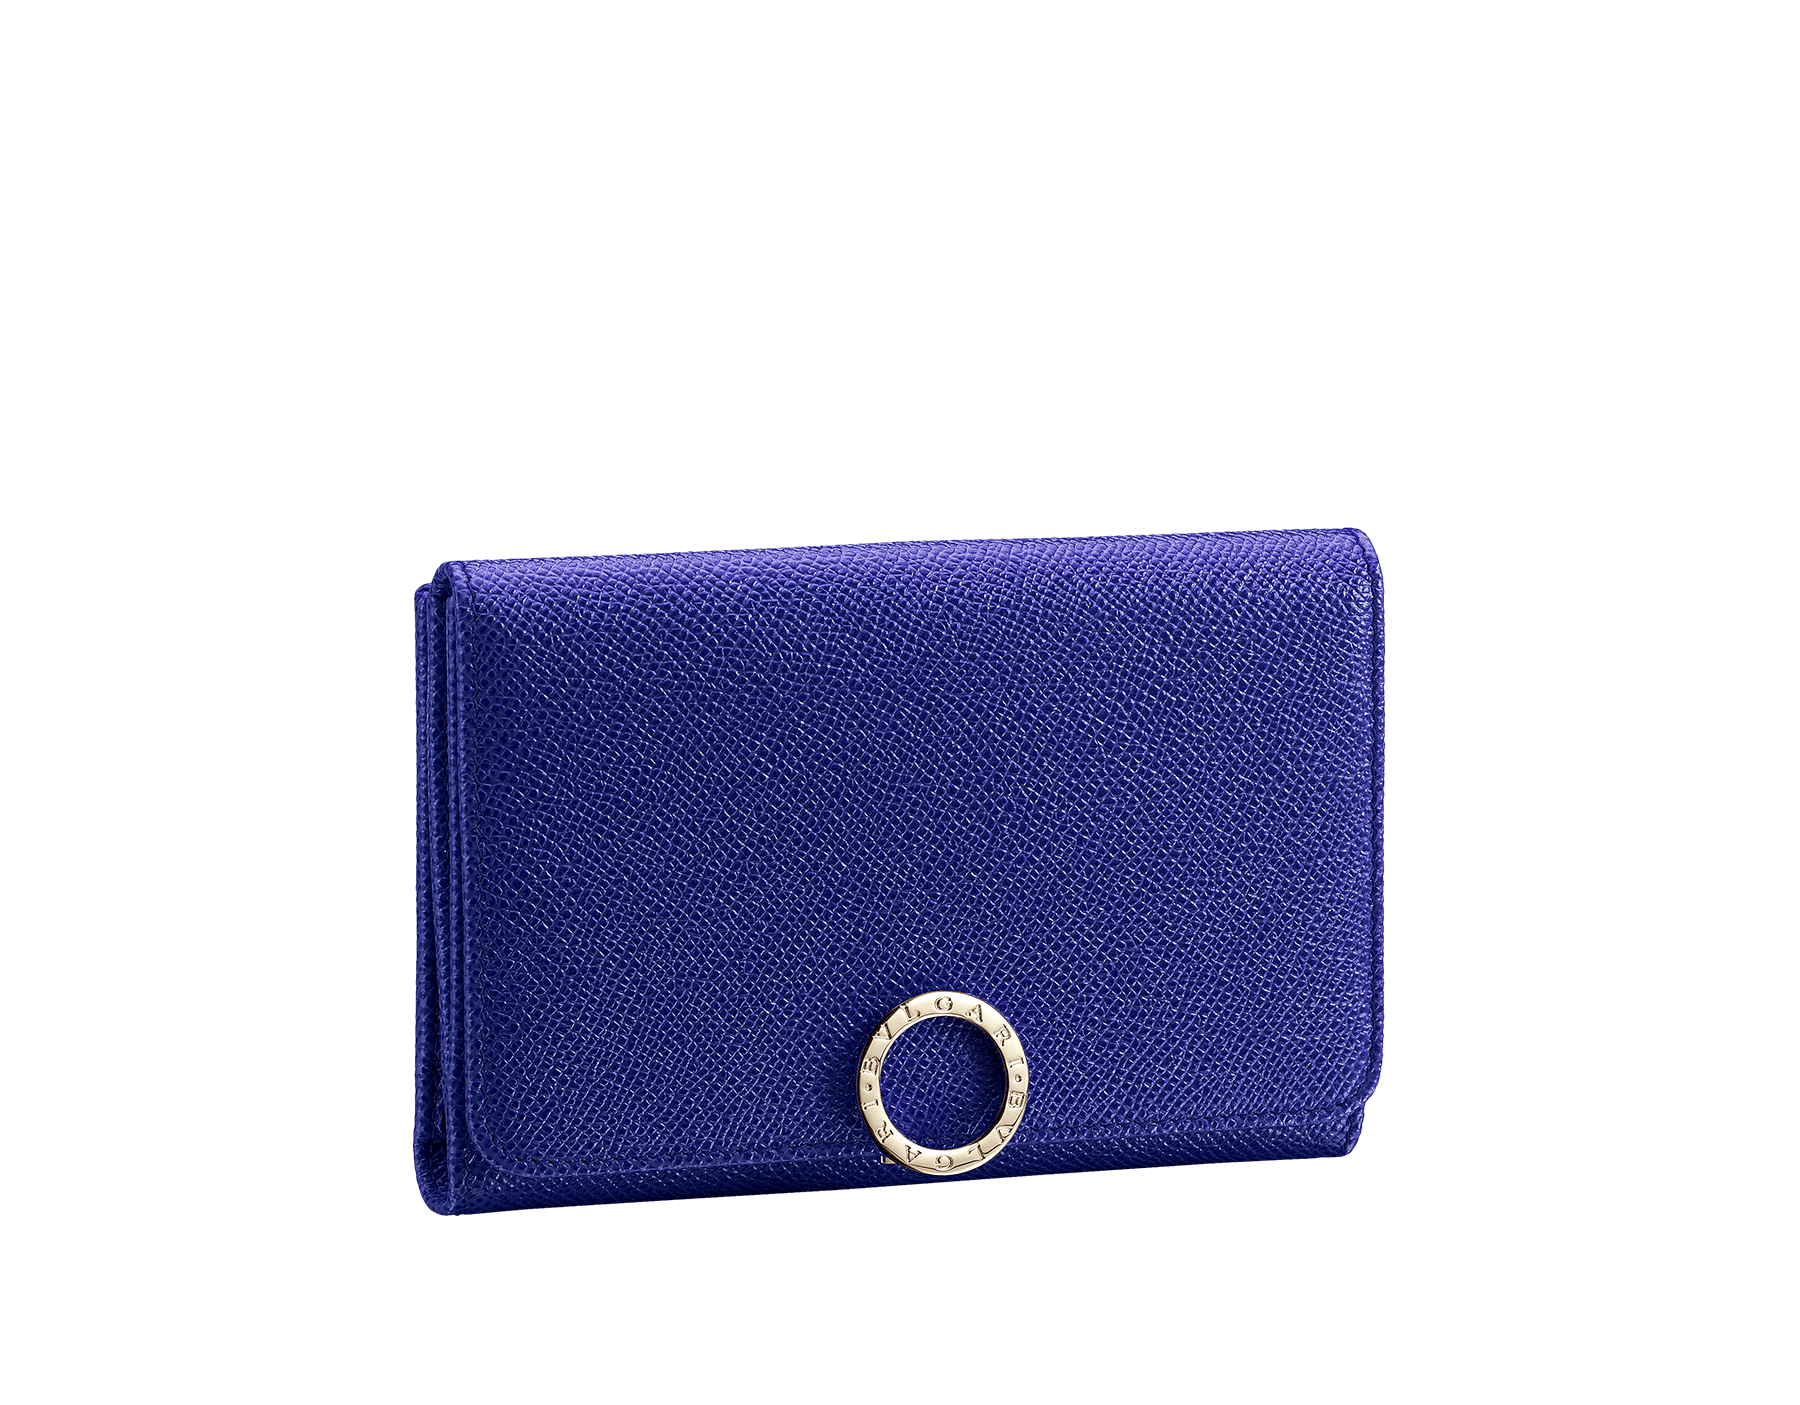 Compact pochette in royal sapphire bright grain calf leather, teal topaz nappa and plum amethyst nappa lining. Brass light gold plated hardware and iconic BVLGARI BVLGARI closure clip. Ten credit card slots, one ID compartment, one bill compartment, one coin pocket with flap, five addictional compartments. Also available in other colours. 14,5 x 10 cm. - 5.7 x 3.9'' 579-COMPPOCHETTE image 1